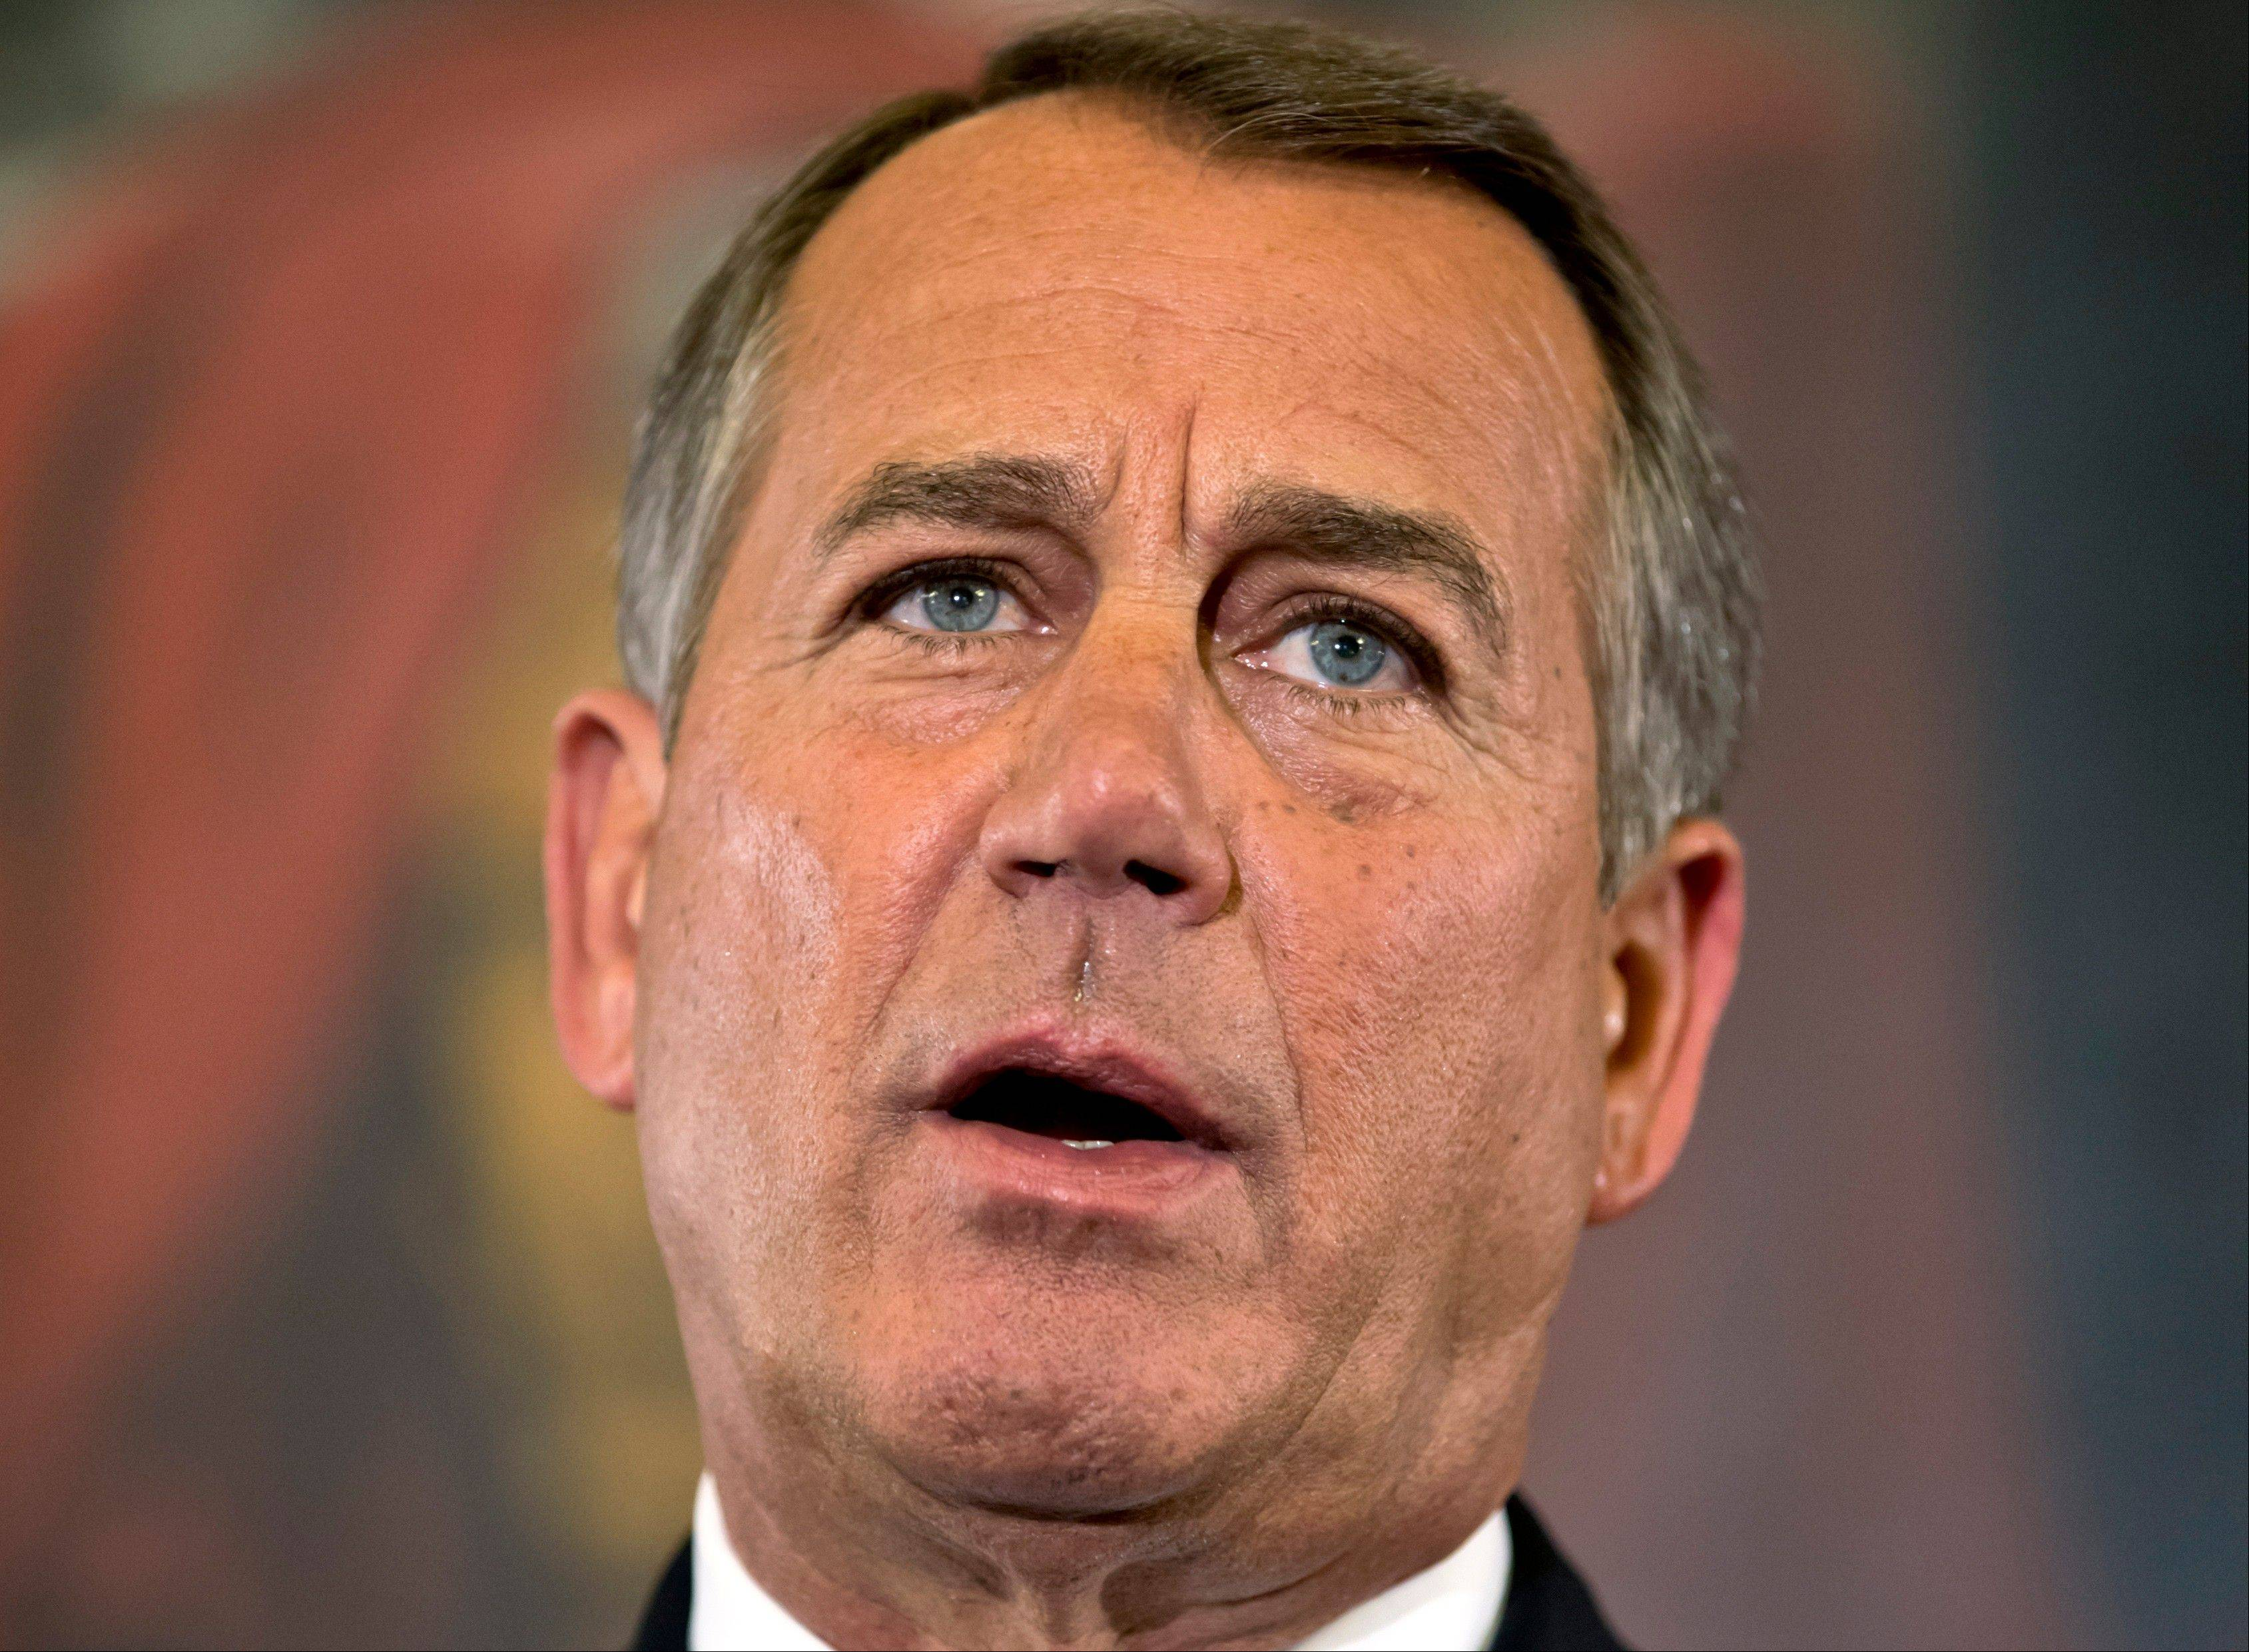 Speaker of the House John Boehner, an Ohio Republican, on Wednesday expressed a willingness to discuss tax hikes.